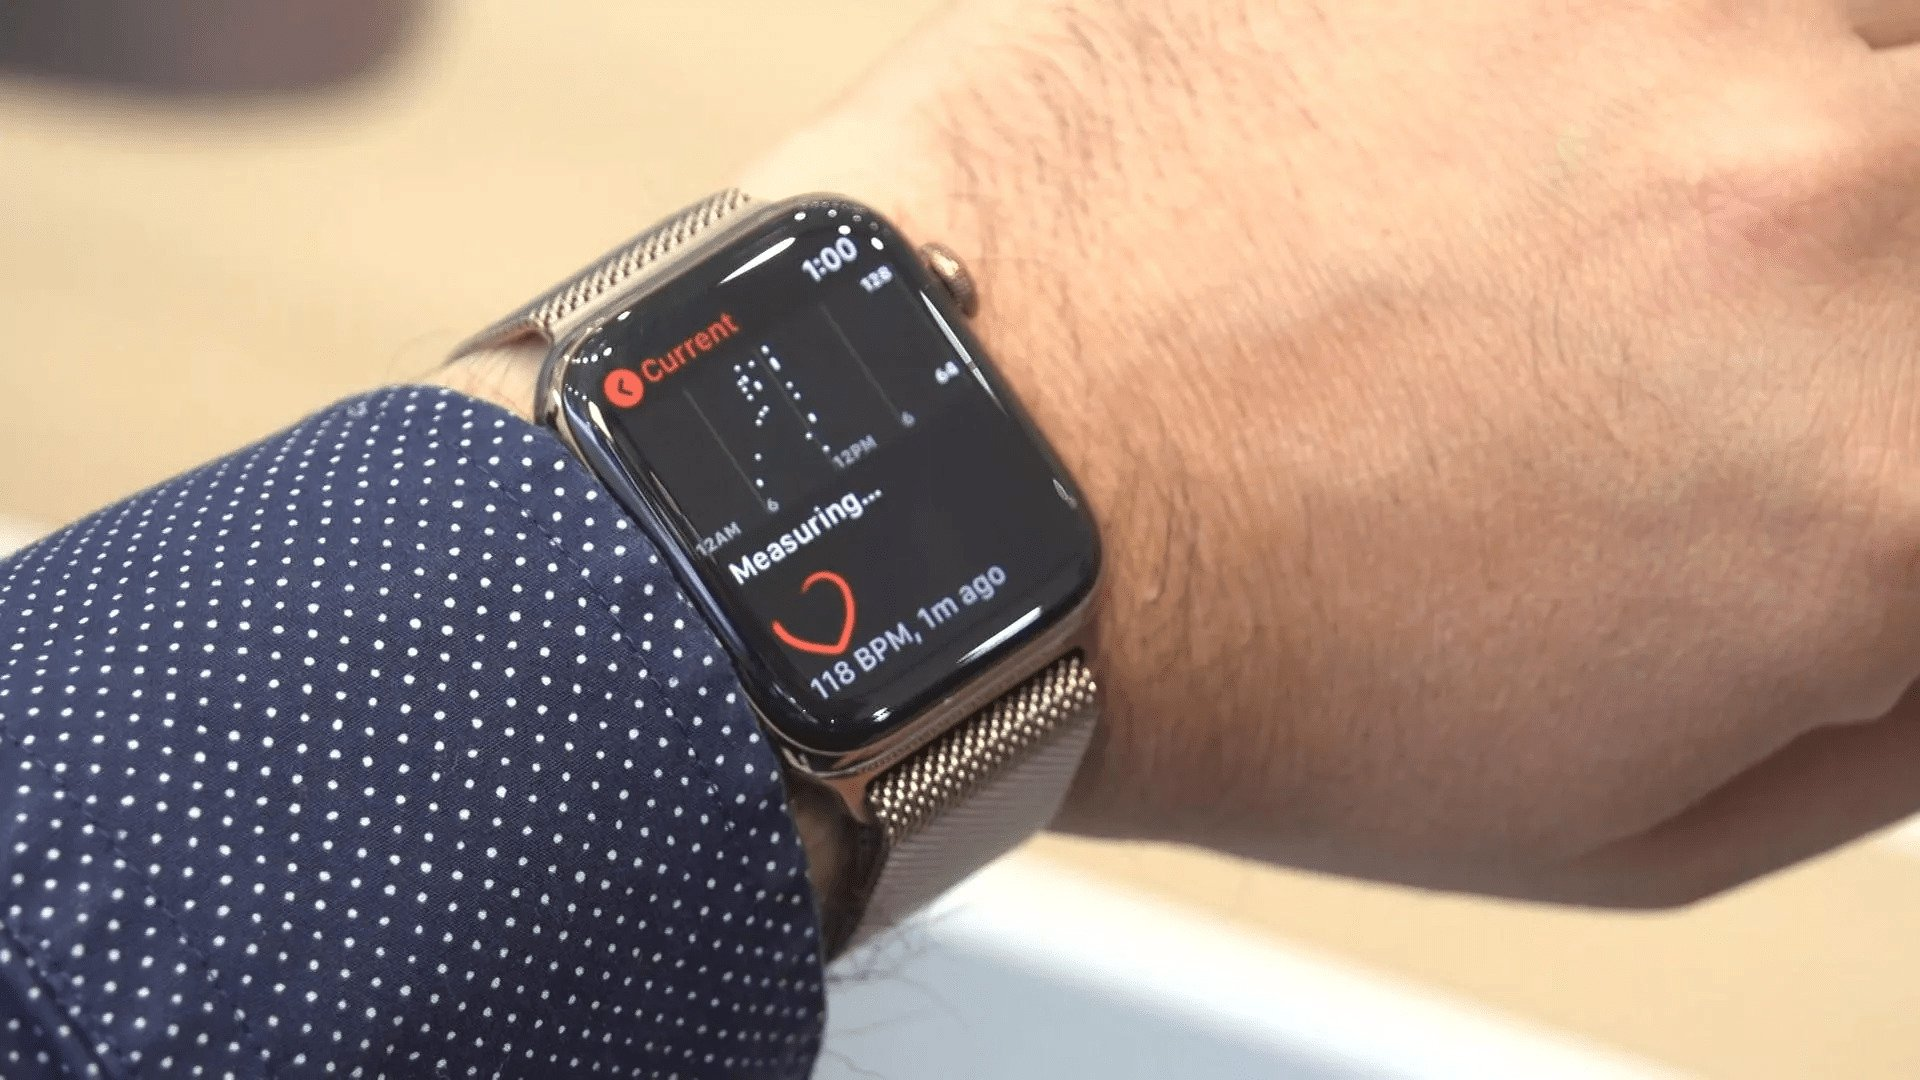 Apple Watch Series 4 brings new design and a larger display